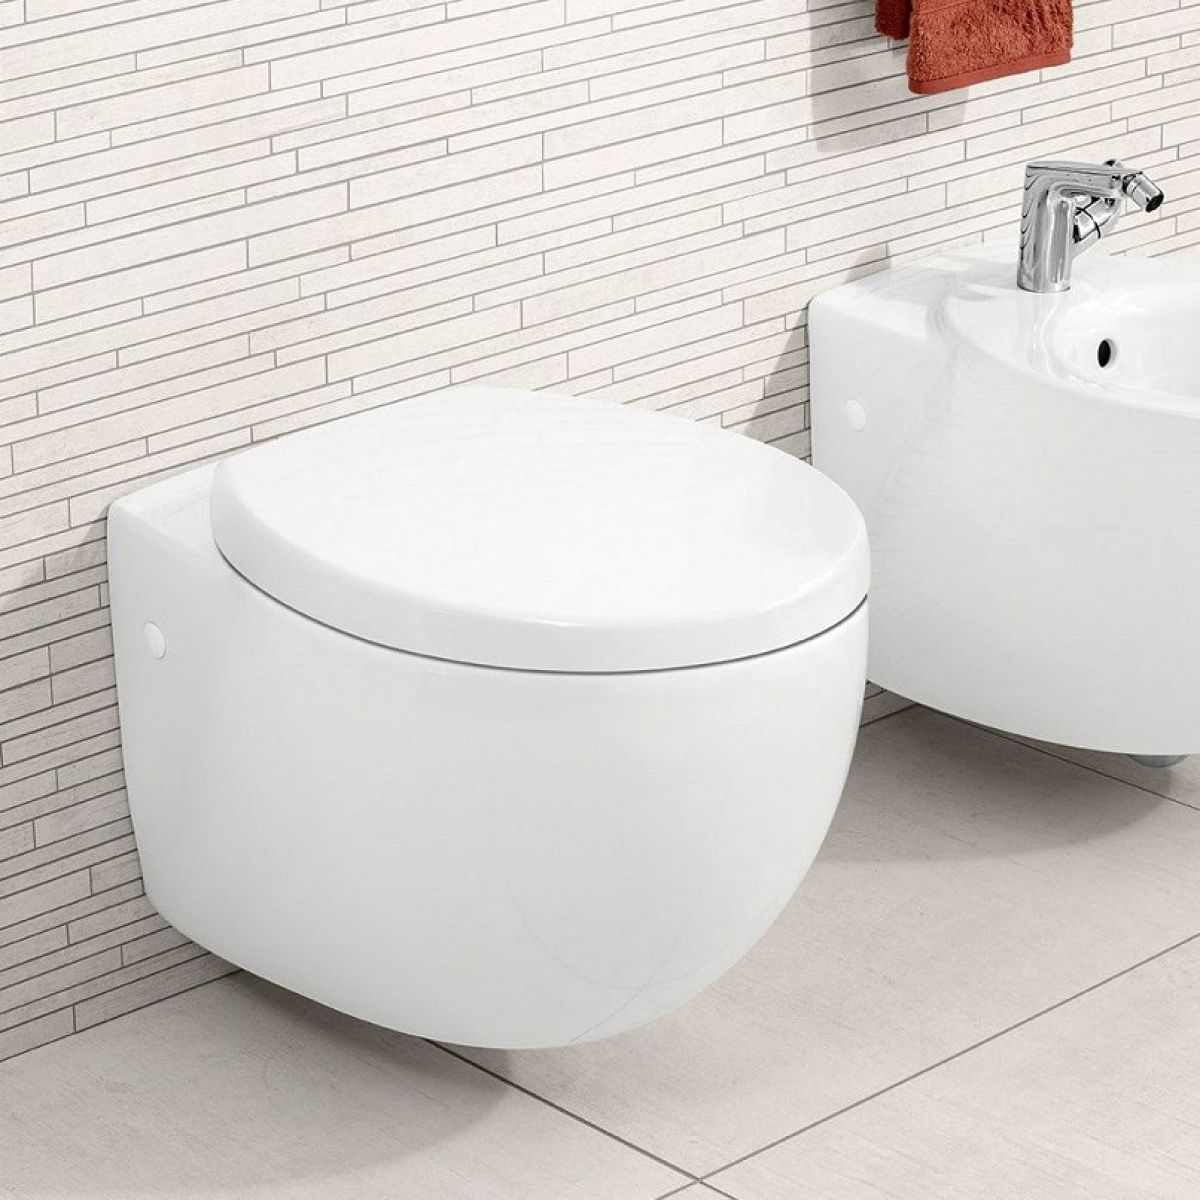 villeroy boch aveo new generation wall hung toilet uk. Black Bedroom Furniture Sets. Home Design Ideas